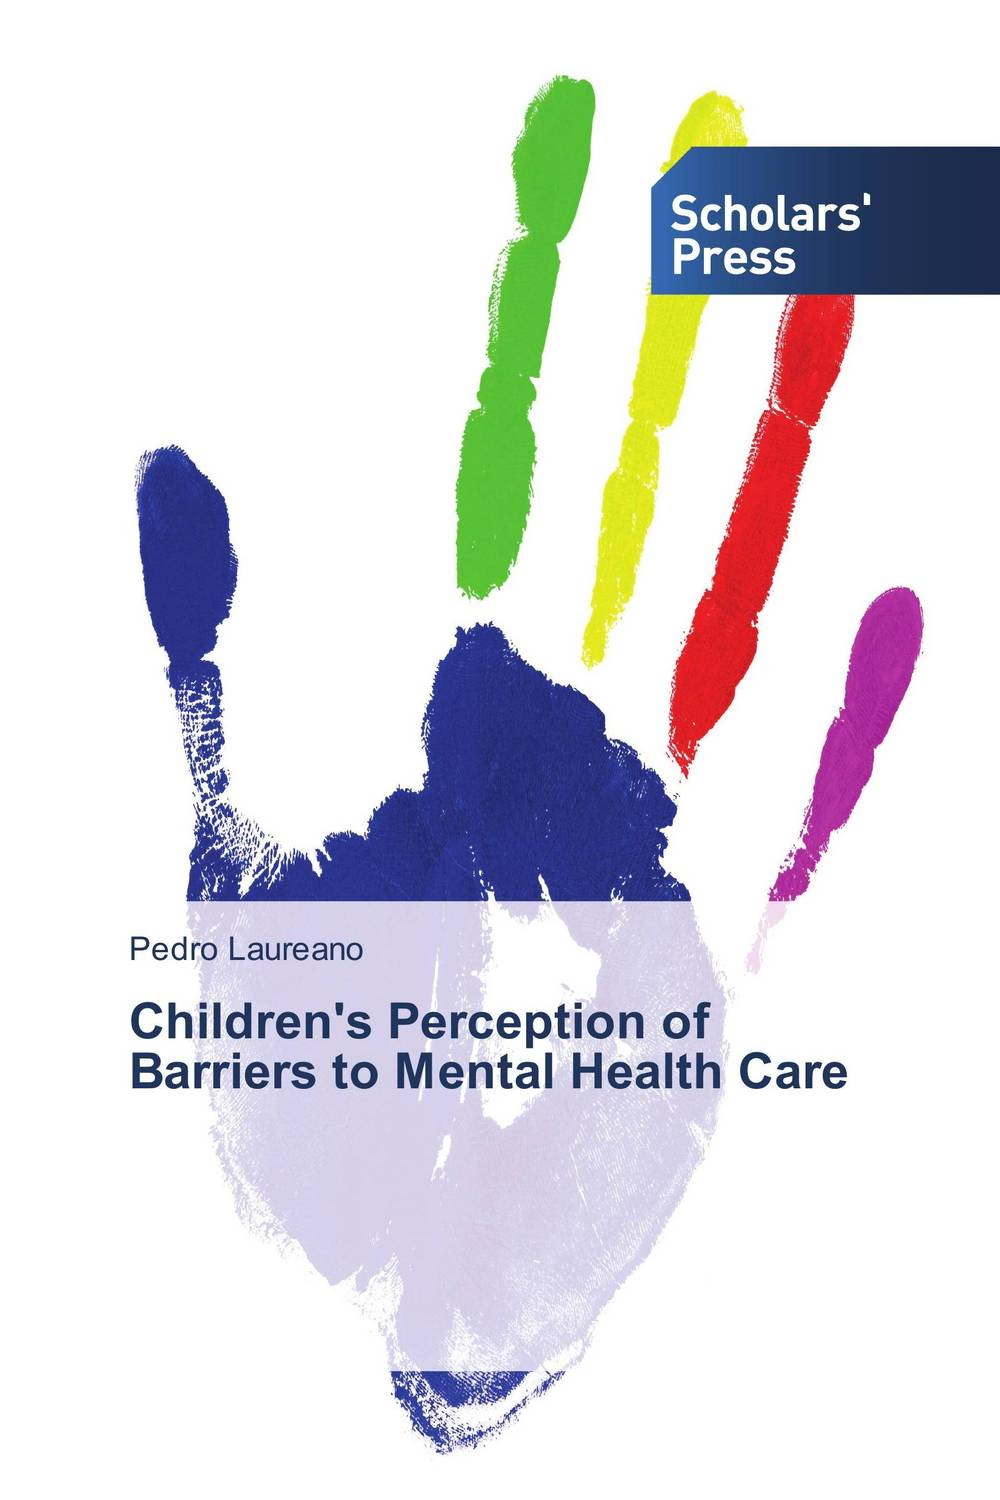 Children's Perception of Barriers to Mental Health Care